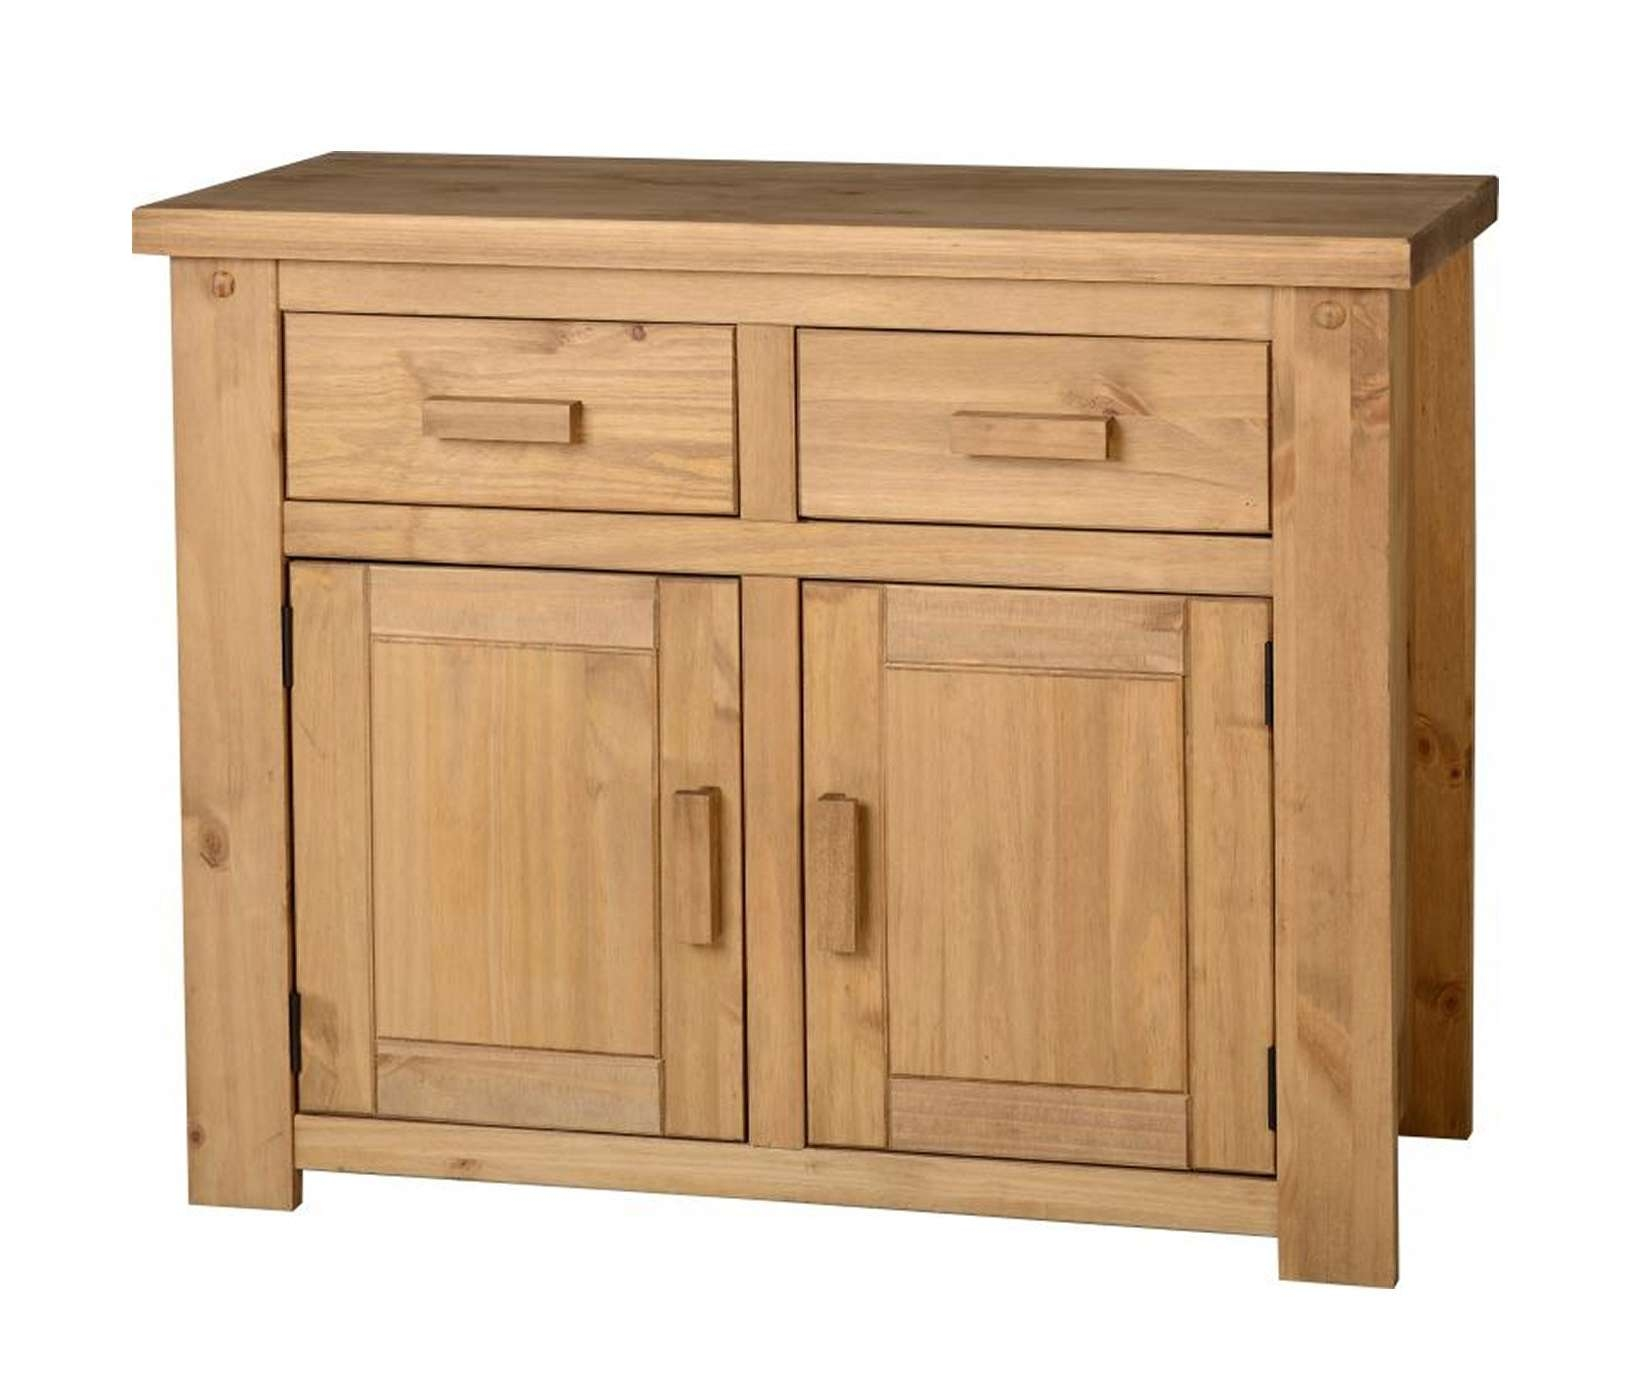 Buy Dark Wood Sideboards From Furniture Direct Uk In Small Dark Wood Sideboards (View 1 of 20)